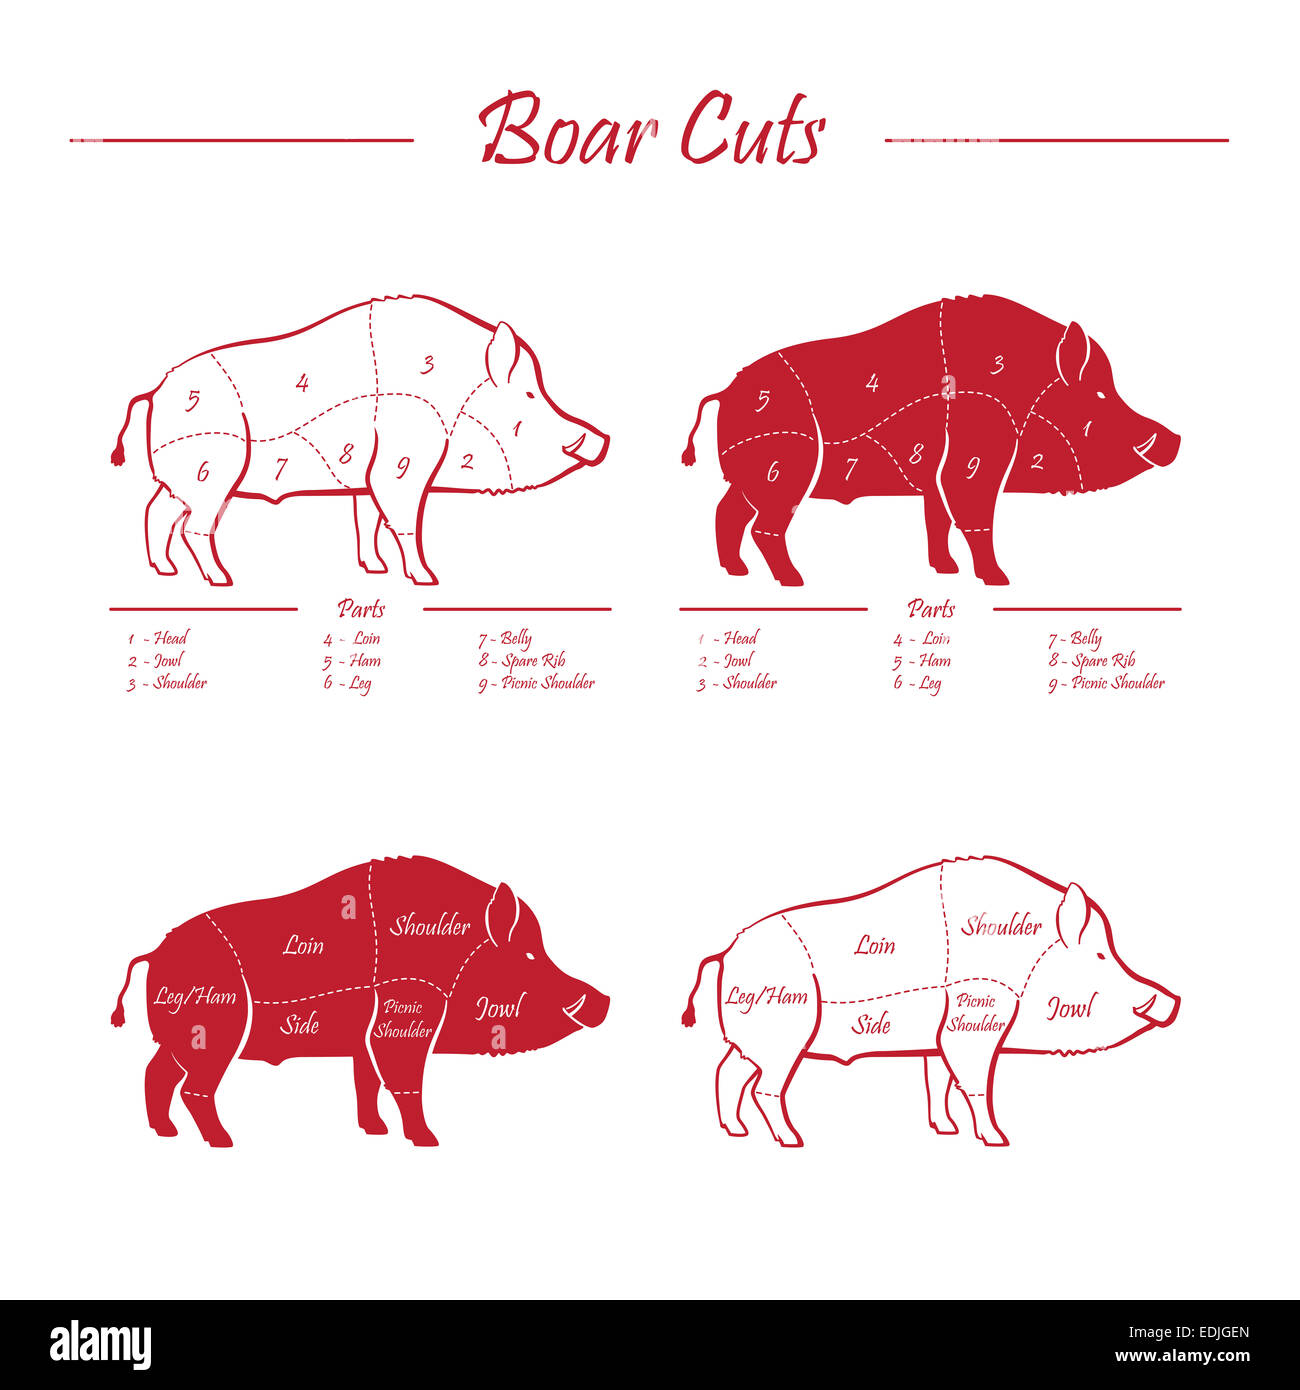 hight resolution of wild hog boar game meat cut diagram scheme elements set red on white background